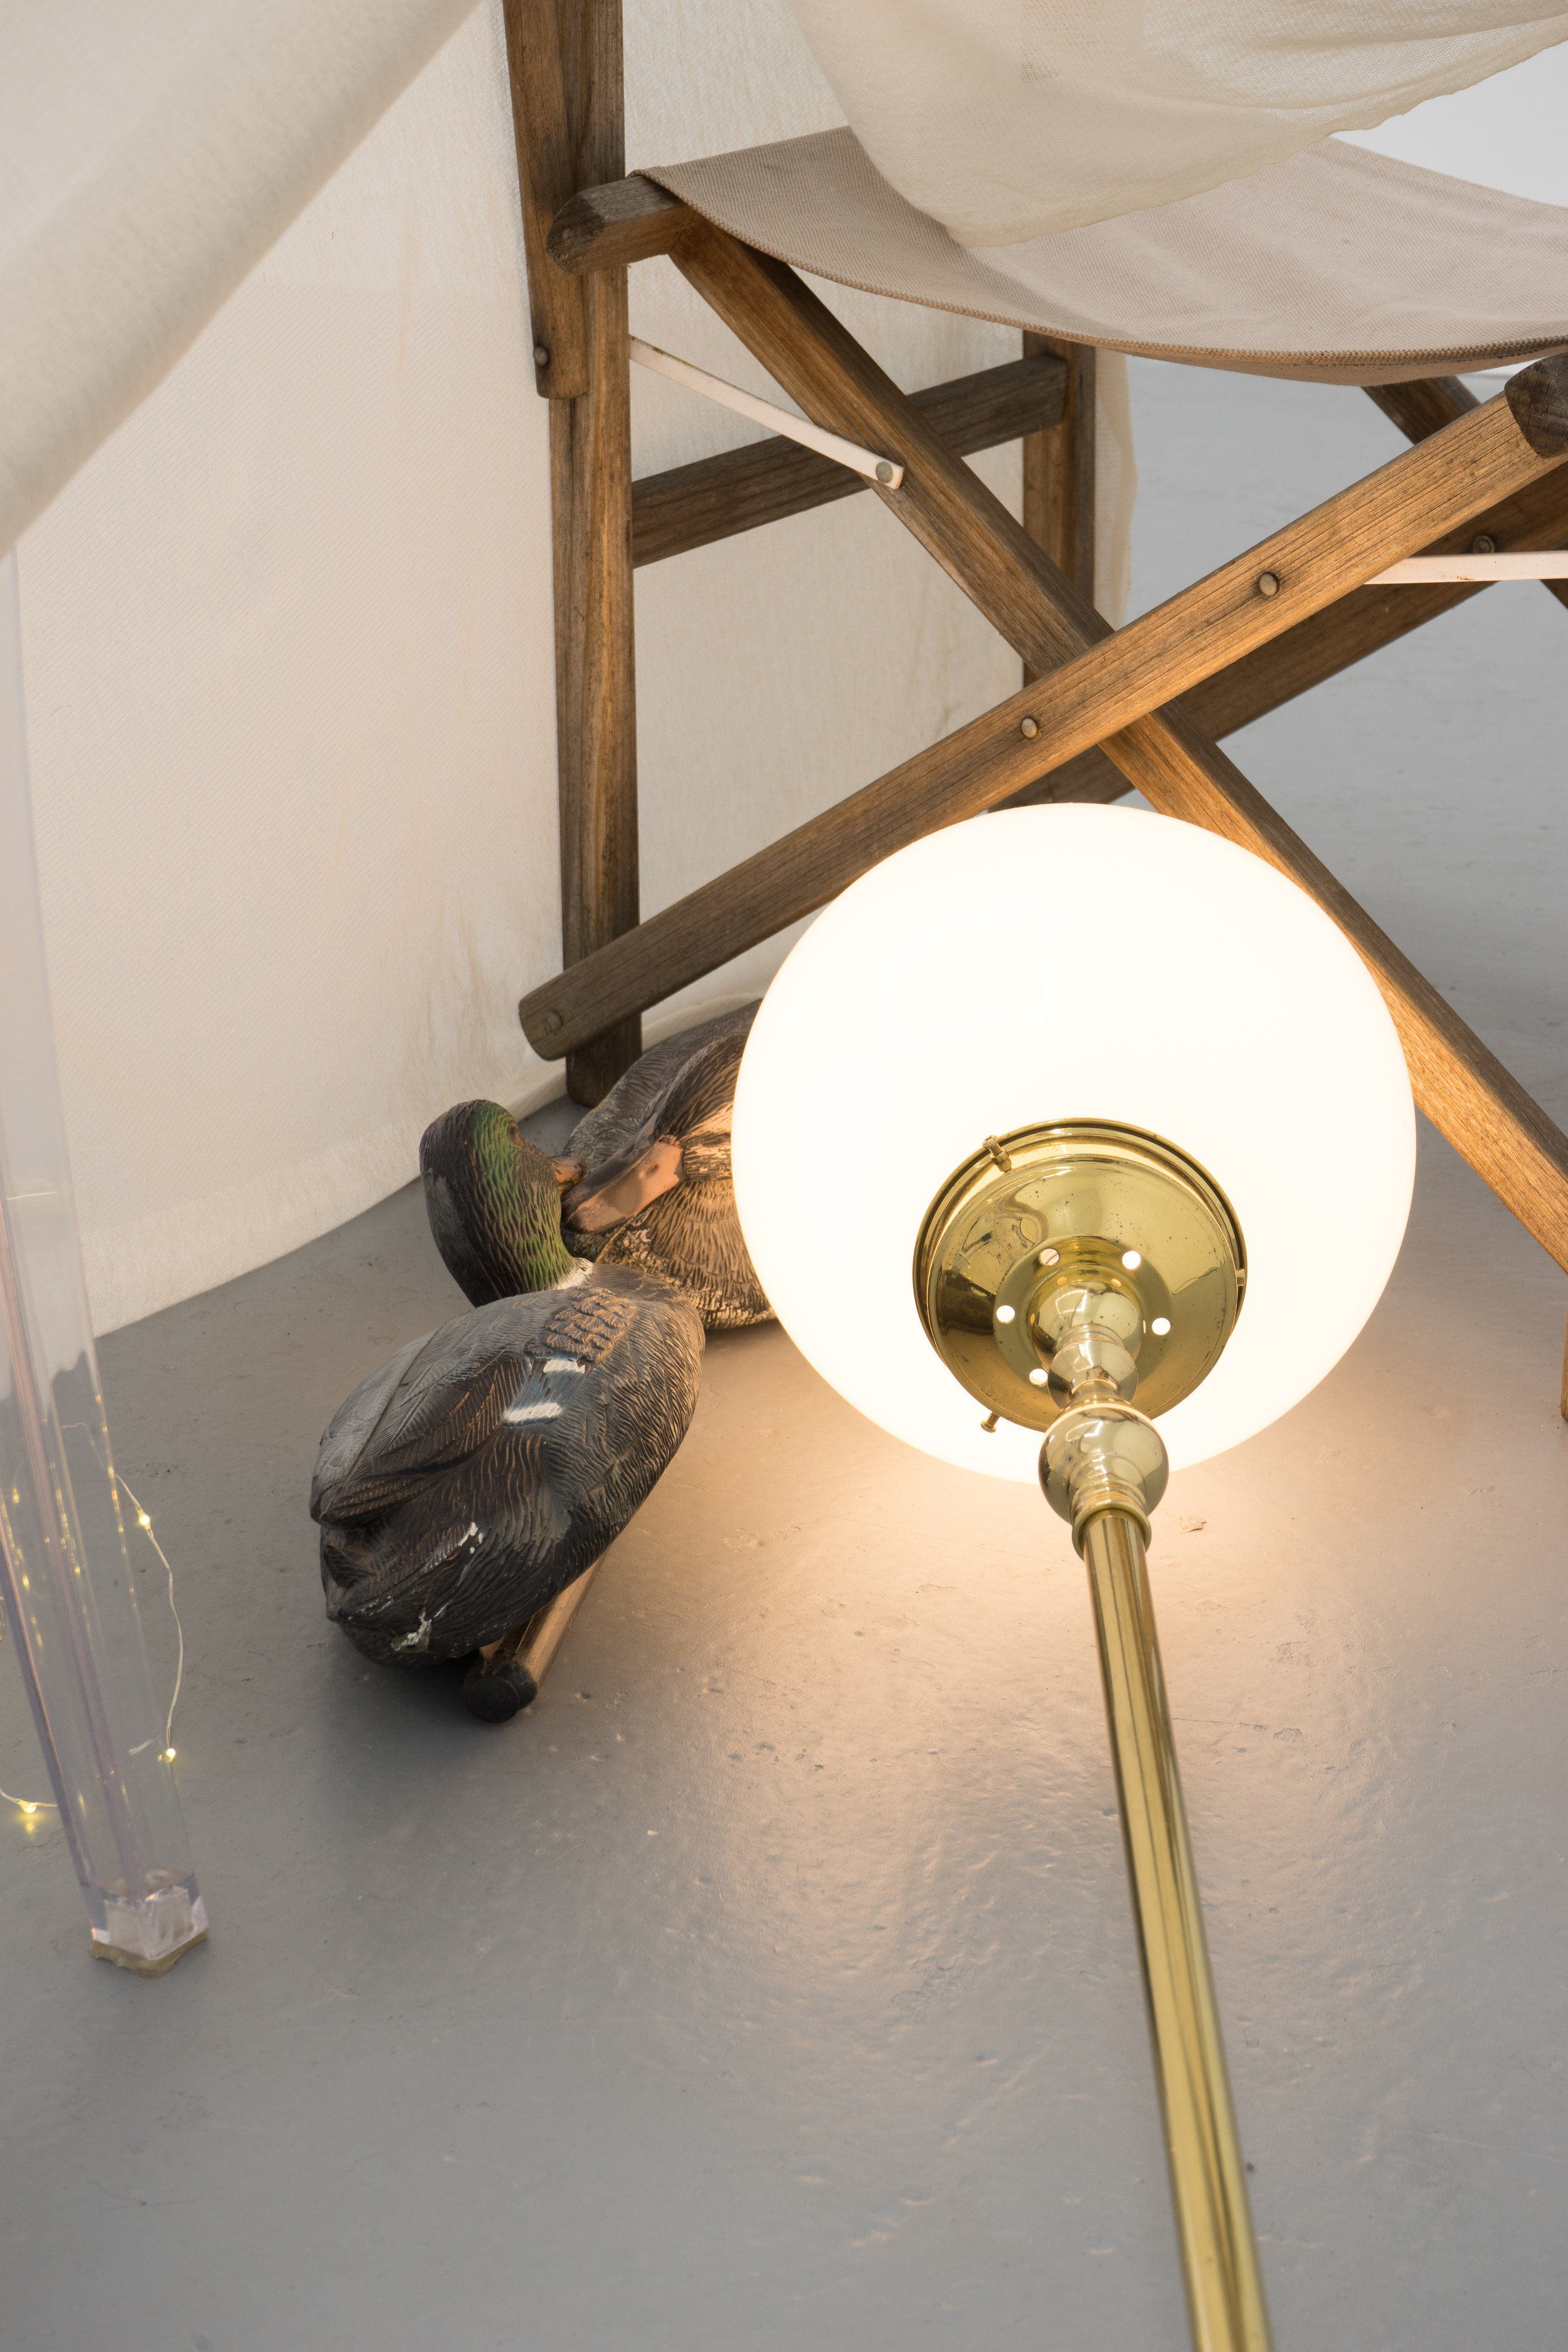 Kate Meakin  Starry Night , 2018 Roll of jersey, deck chair, replica 'Ghost Chair', vintage brass lamp, plastic decoy ducks, LED fairy lights, antique lace  Image credit: Ruben Bull-milne